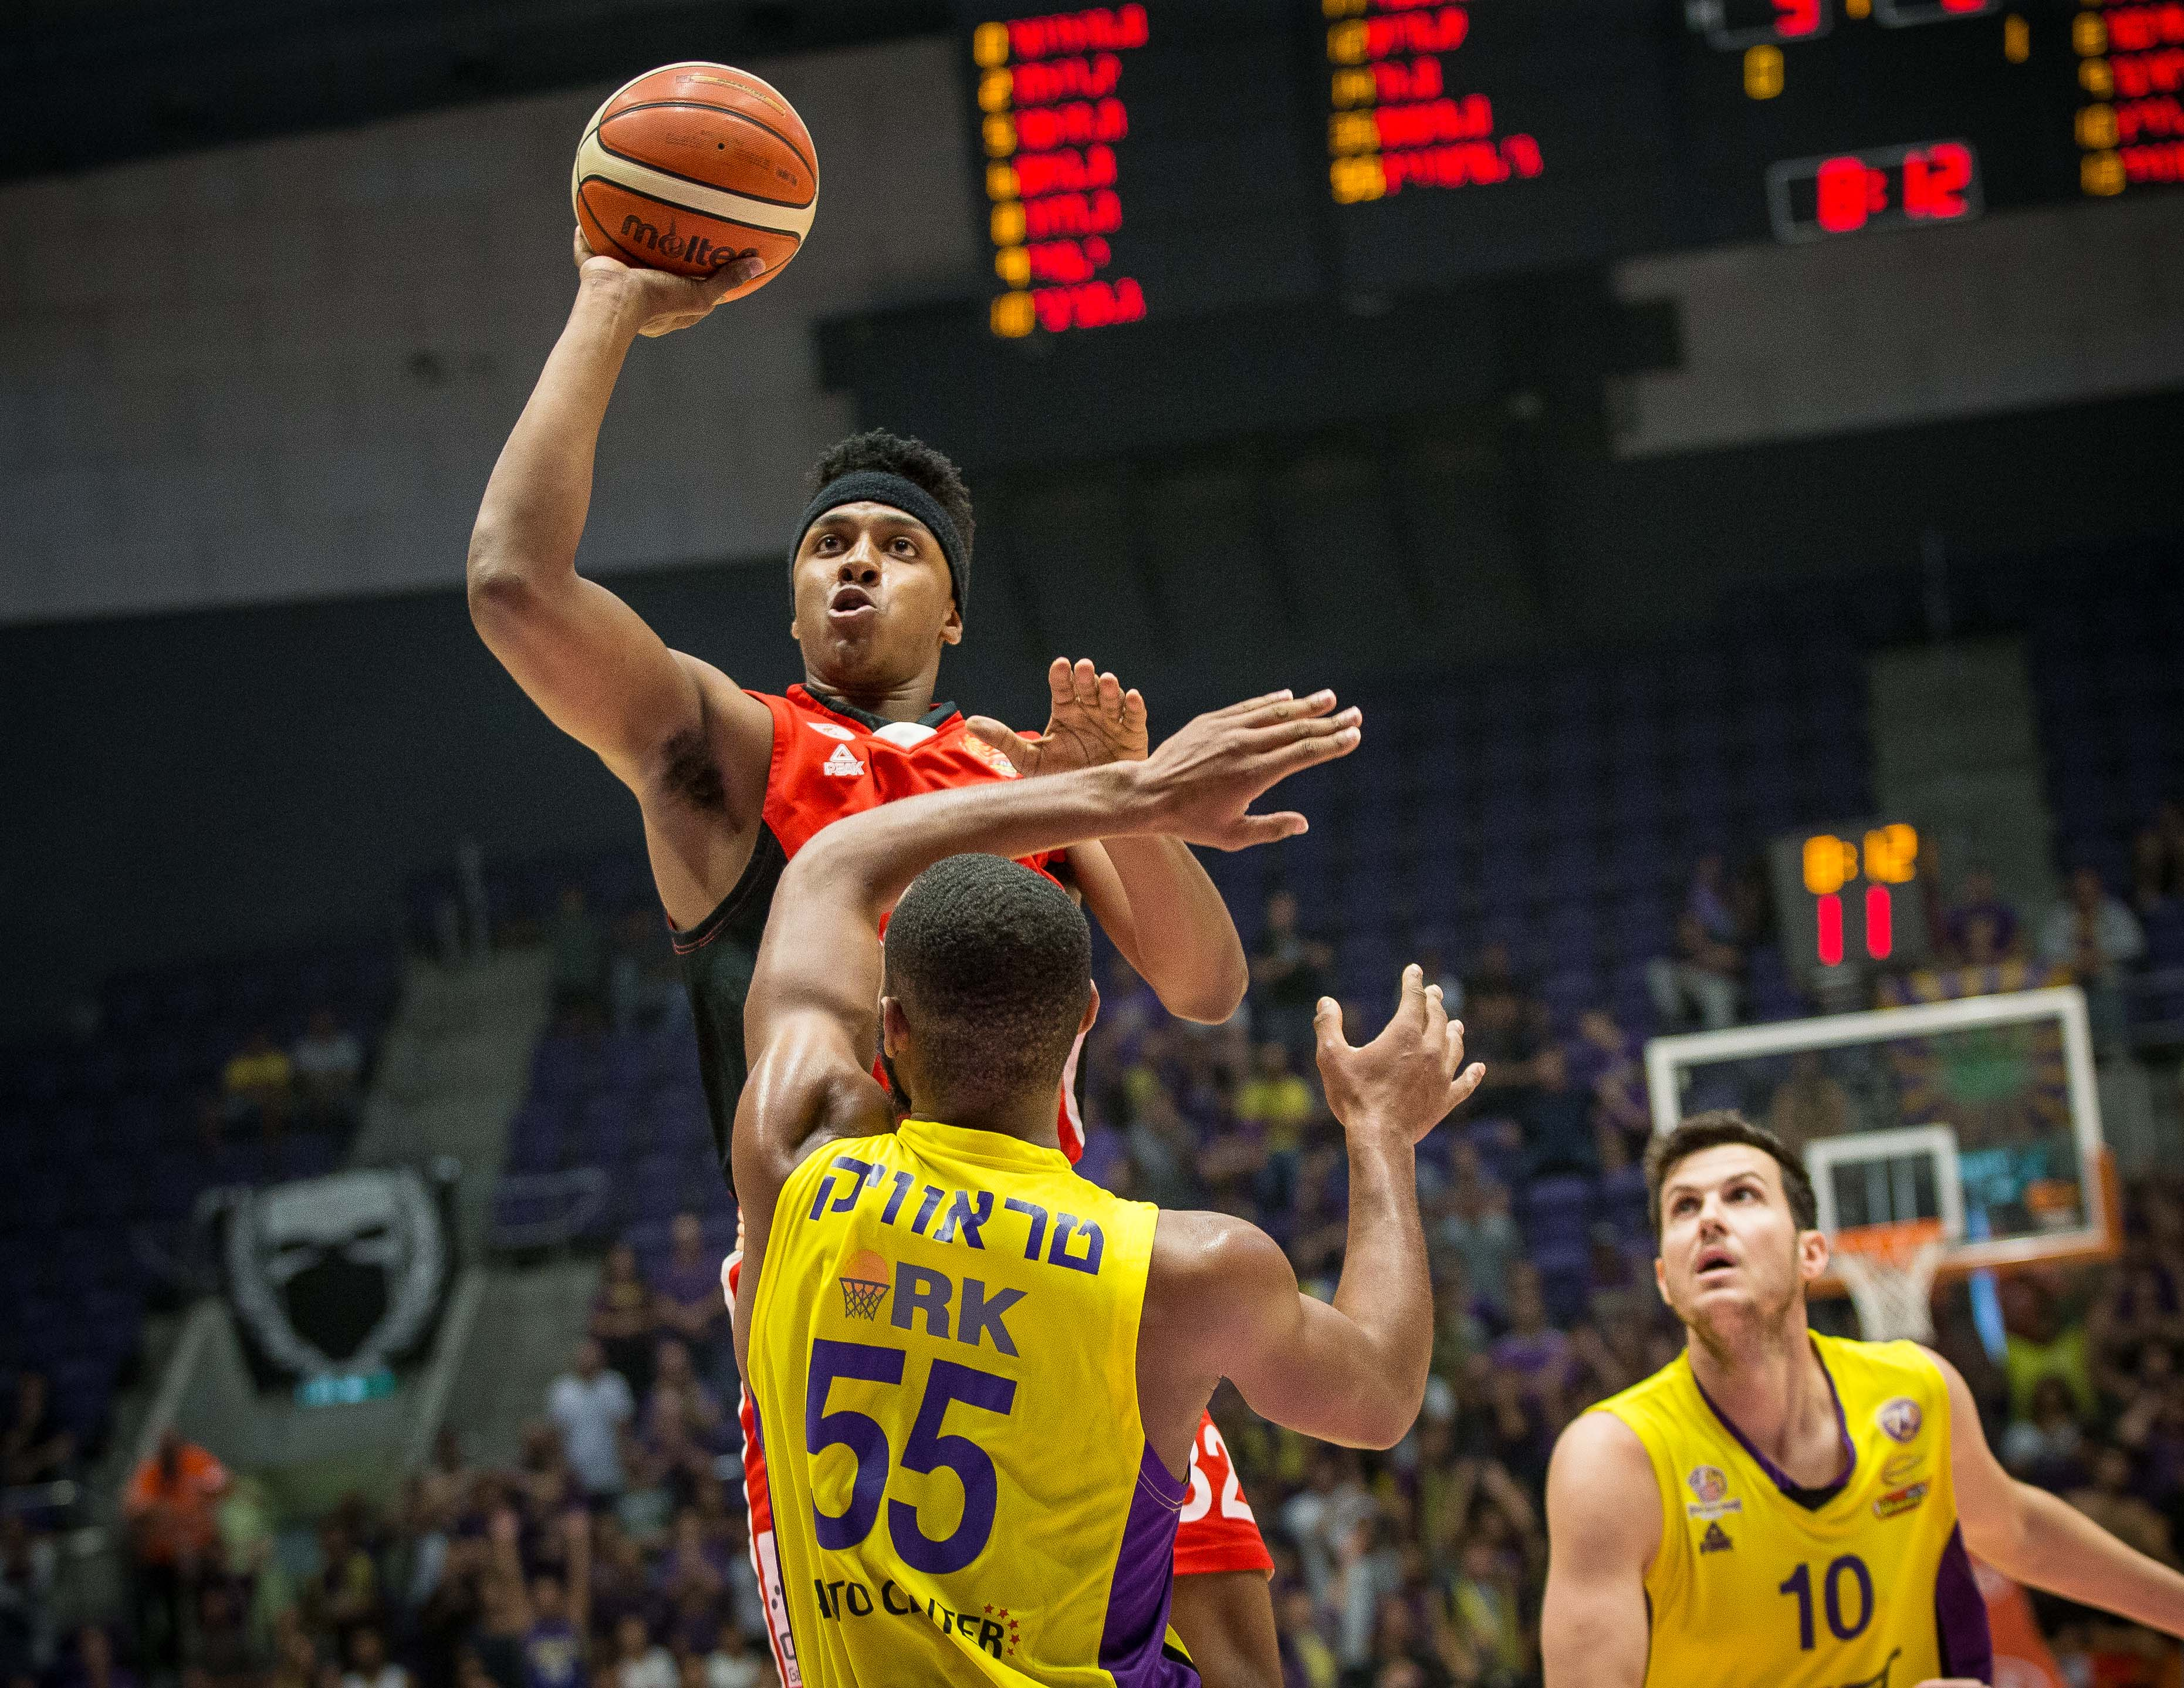 Winner Cup, 1/4 Finals: Hapoel Holon - Gilboa/Galil 73:82